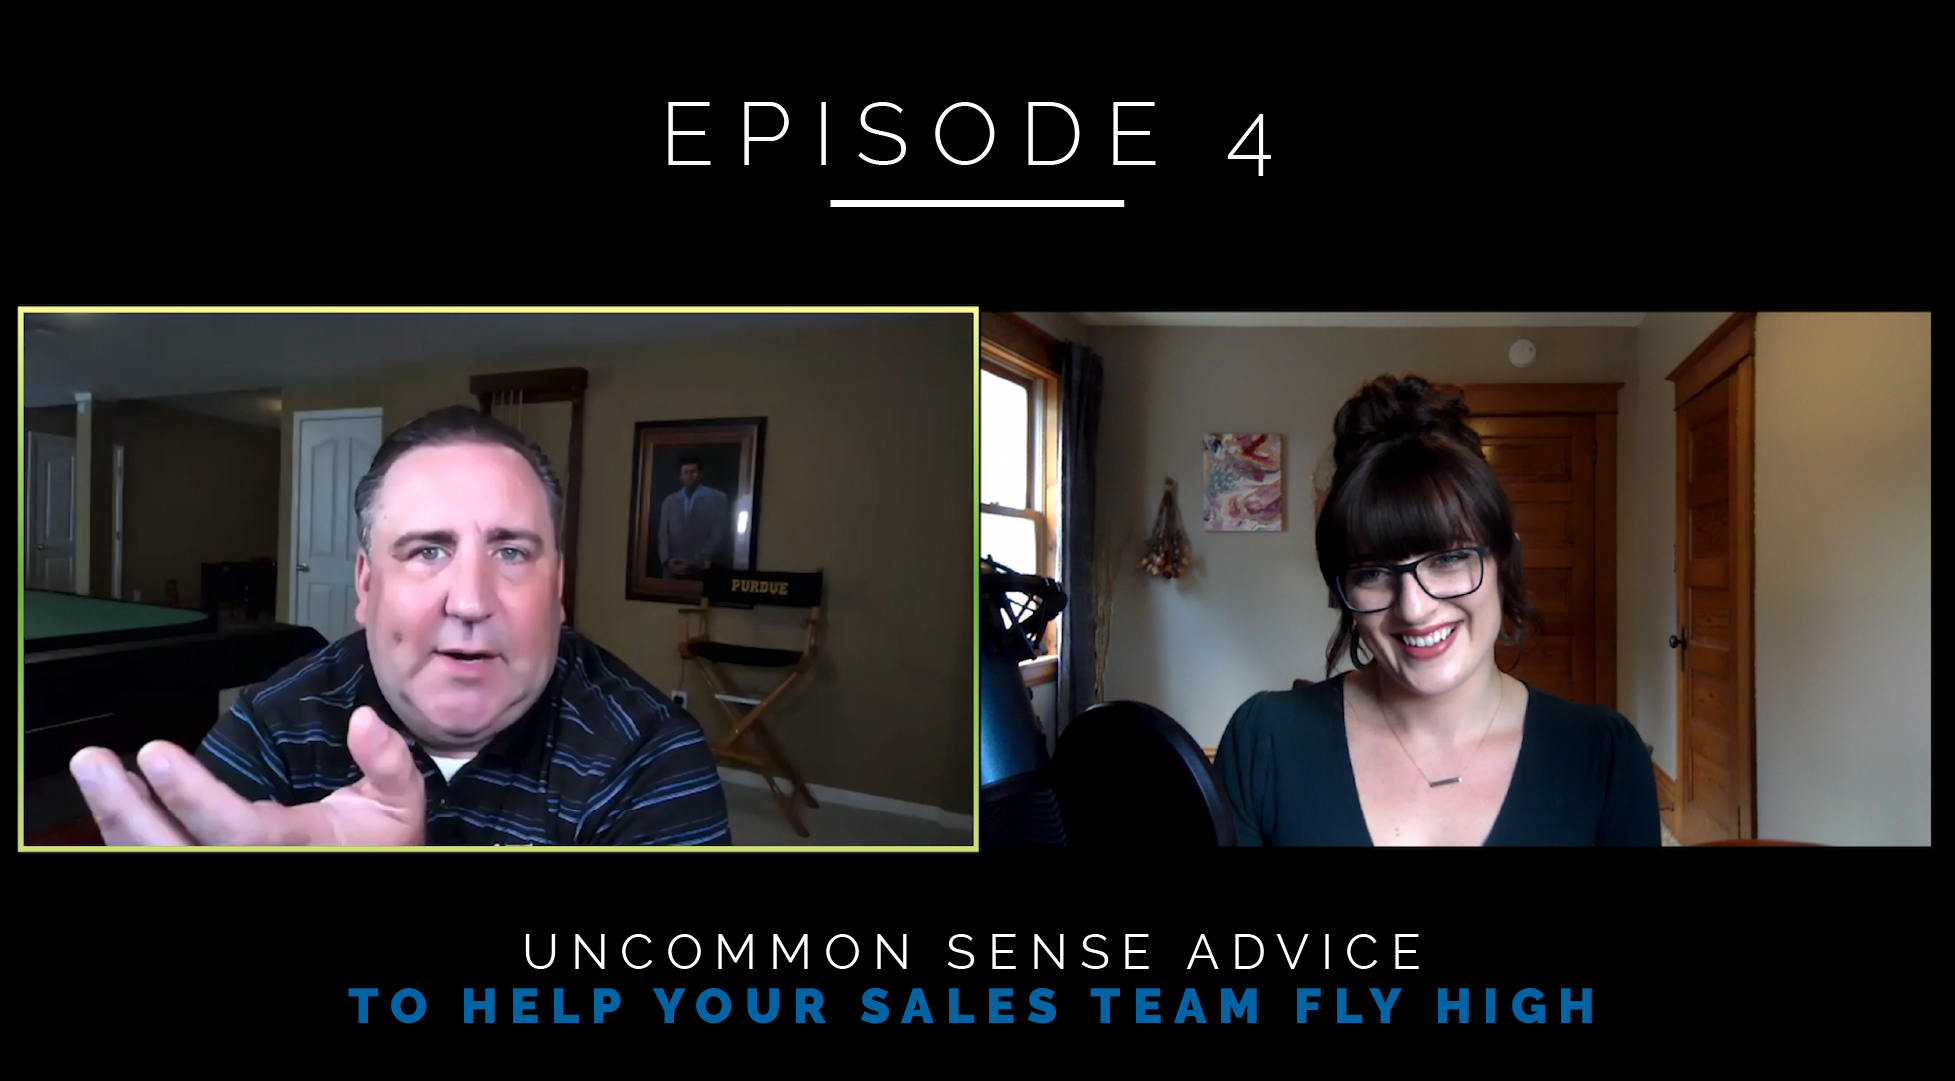 Uncommon Sense Advice to Help Your Sales Team Fly High